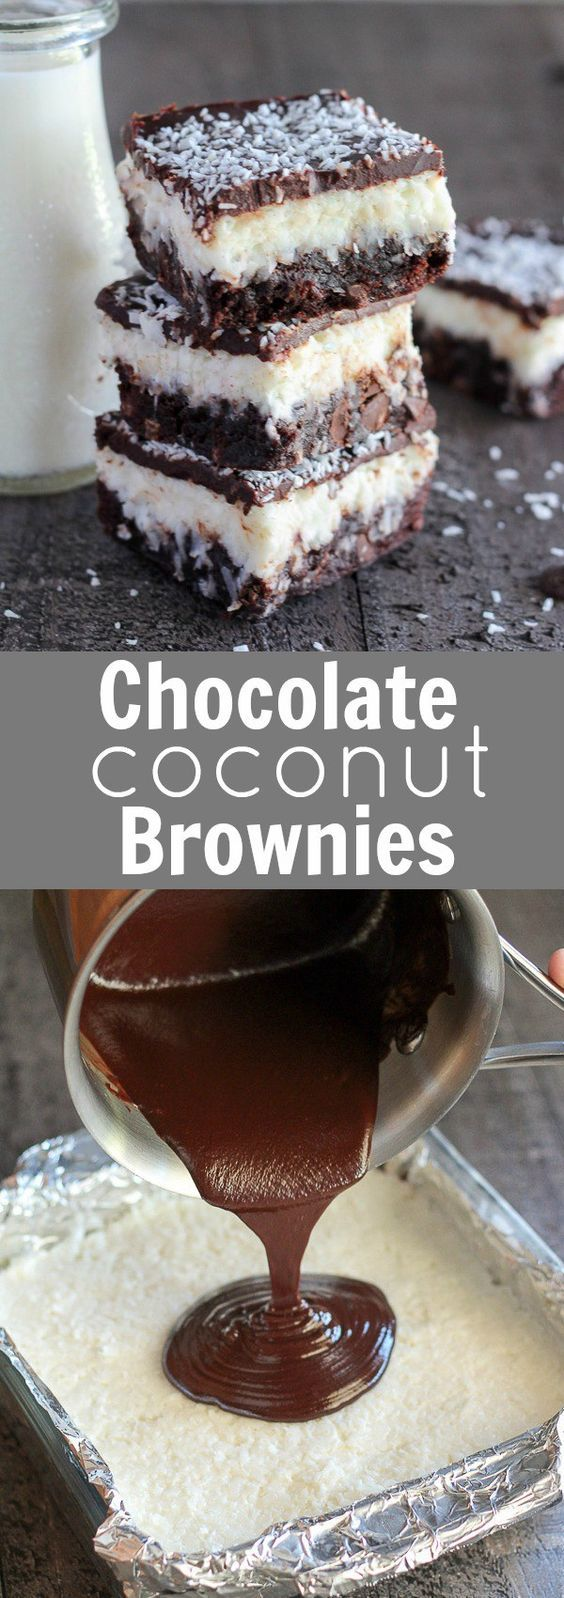 Chocolate Coconut Brownies - Fudgy brownies topped with a layer of creamy sweet coconut and finished with a smooth chocolate ganache. Use your favorite boxed or homemade brownie recipe for this decadent triple layer dessert.